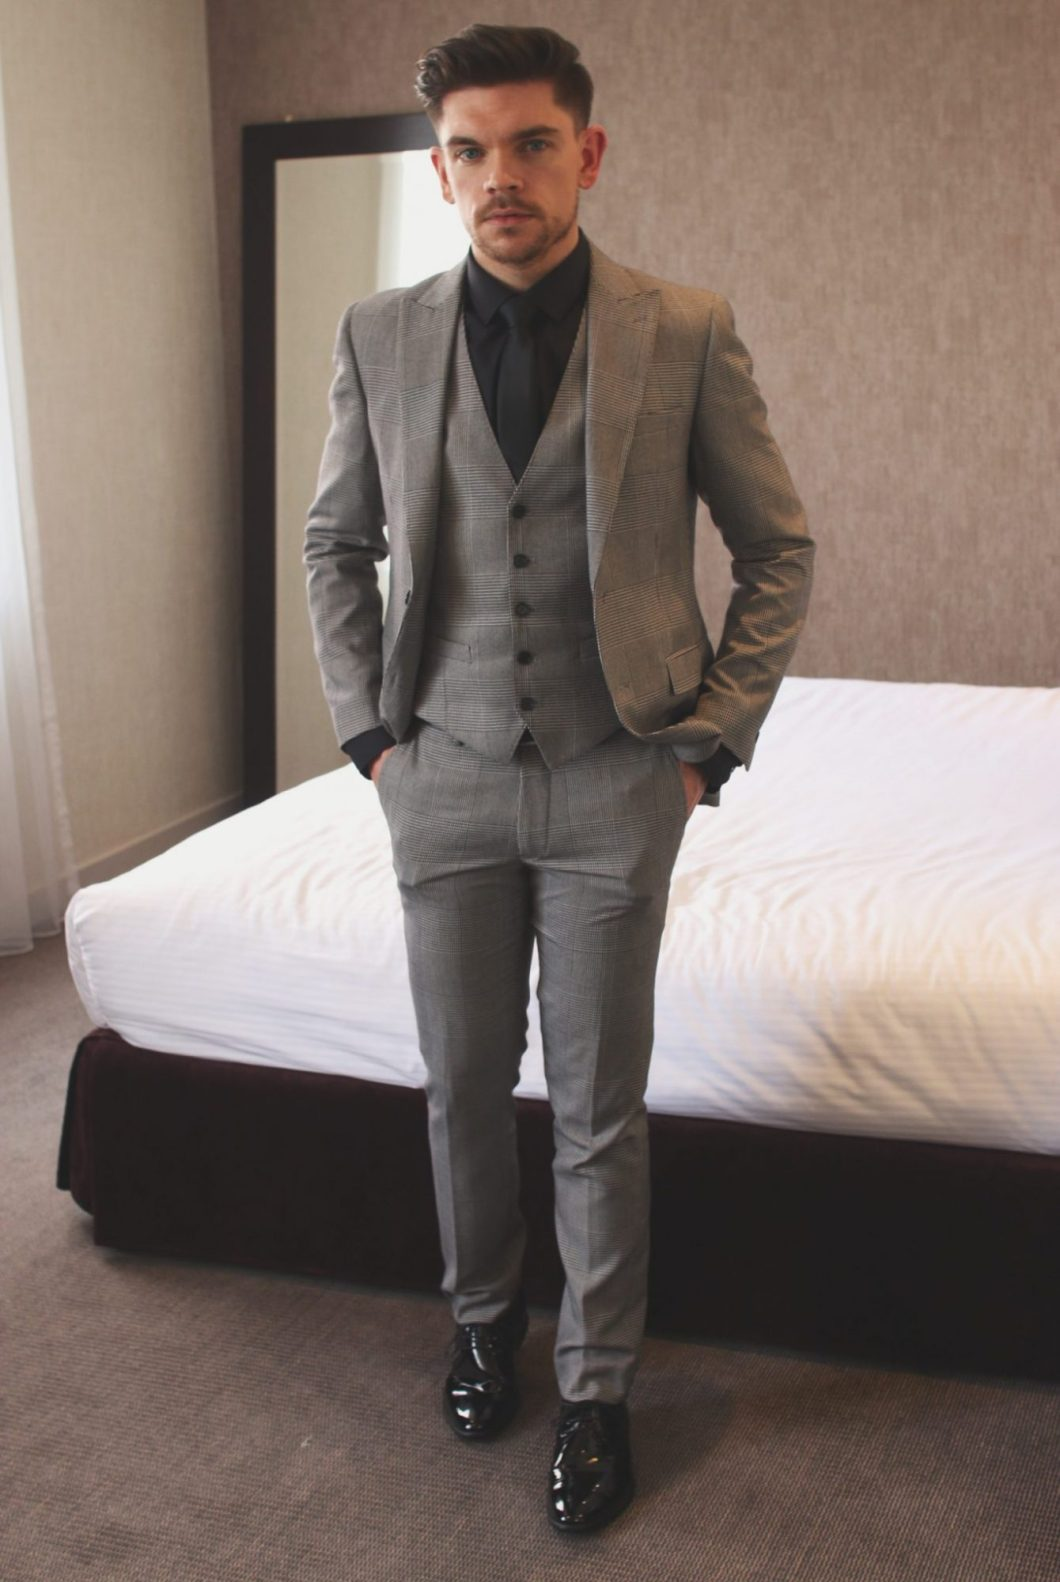 Robin James Man For Himself Prom Suit